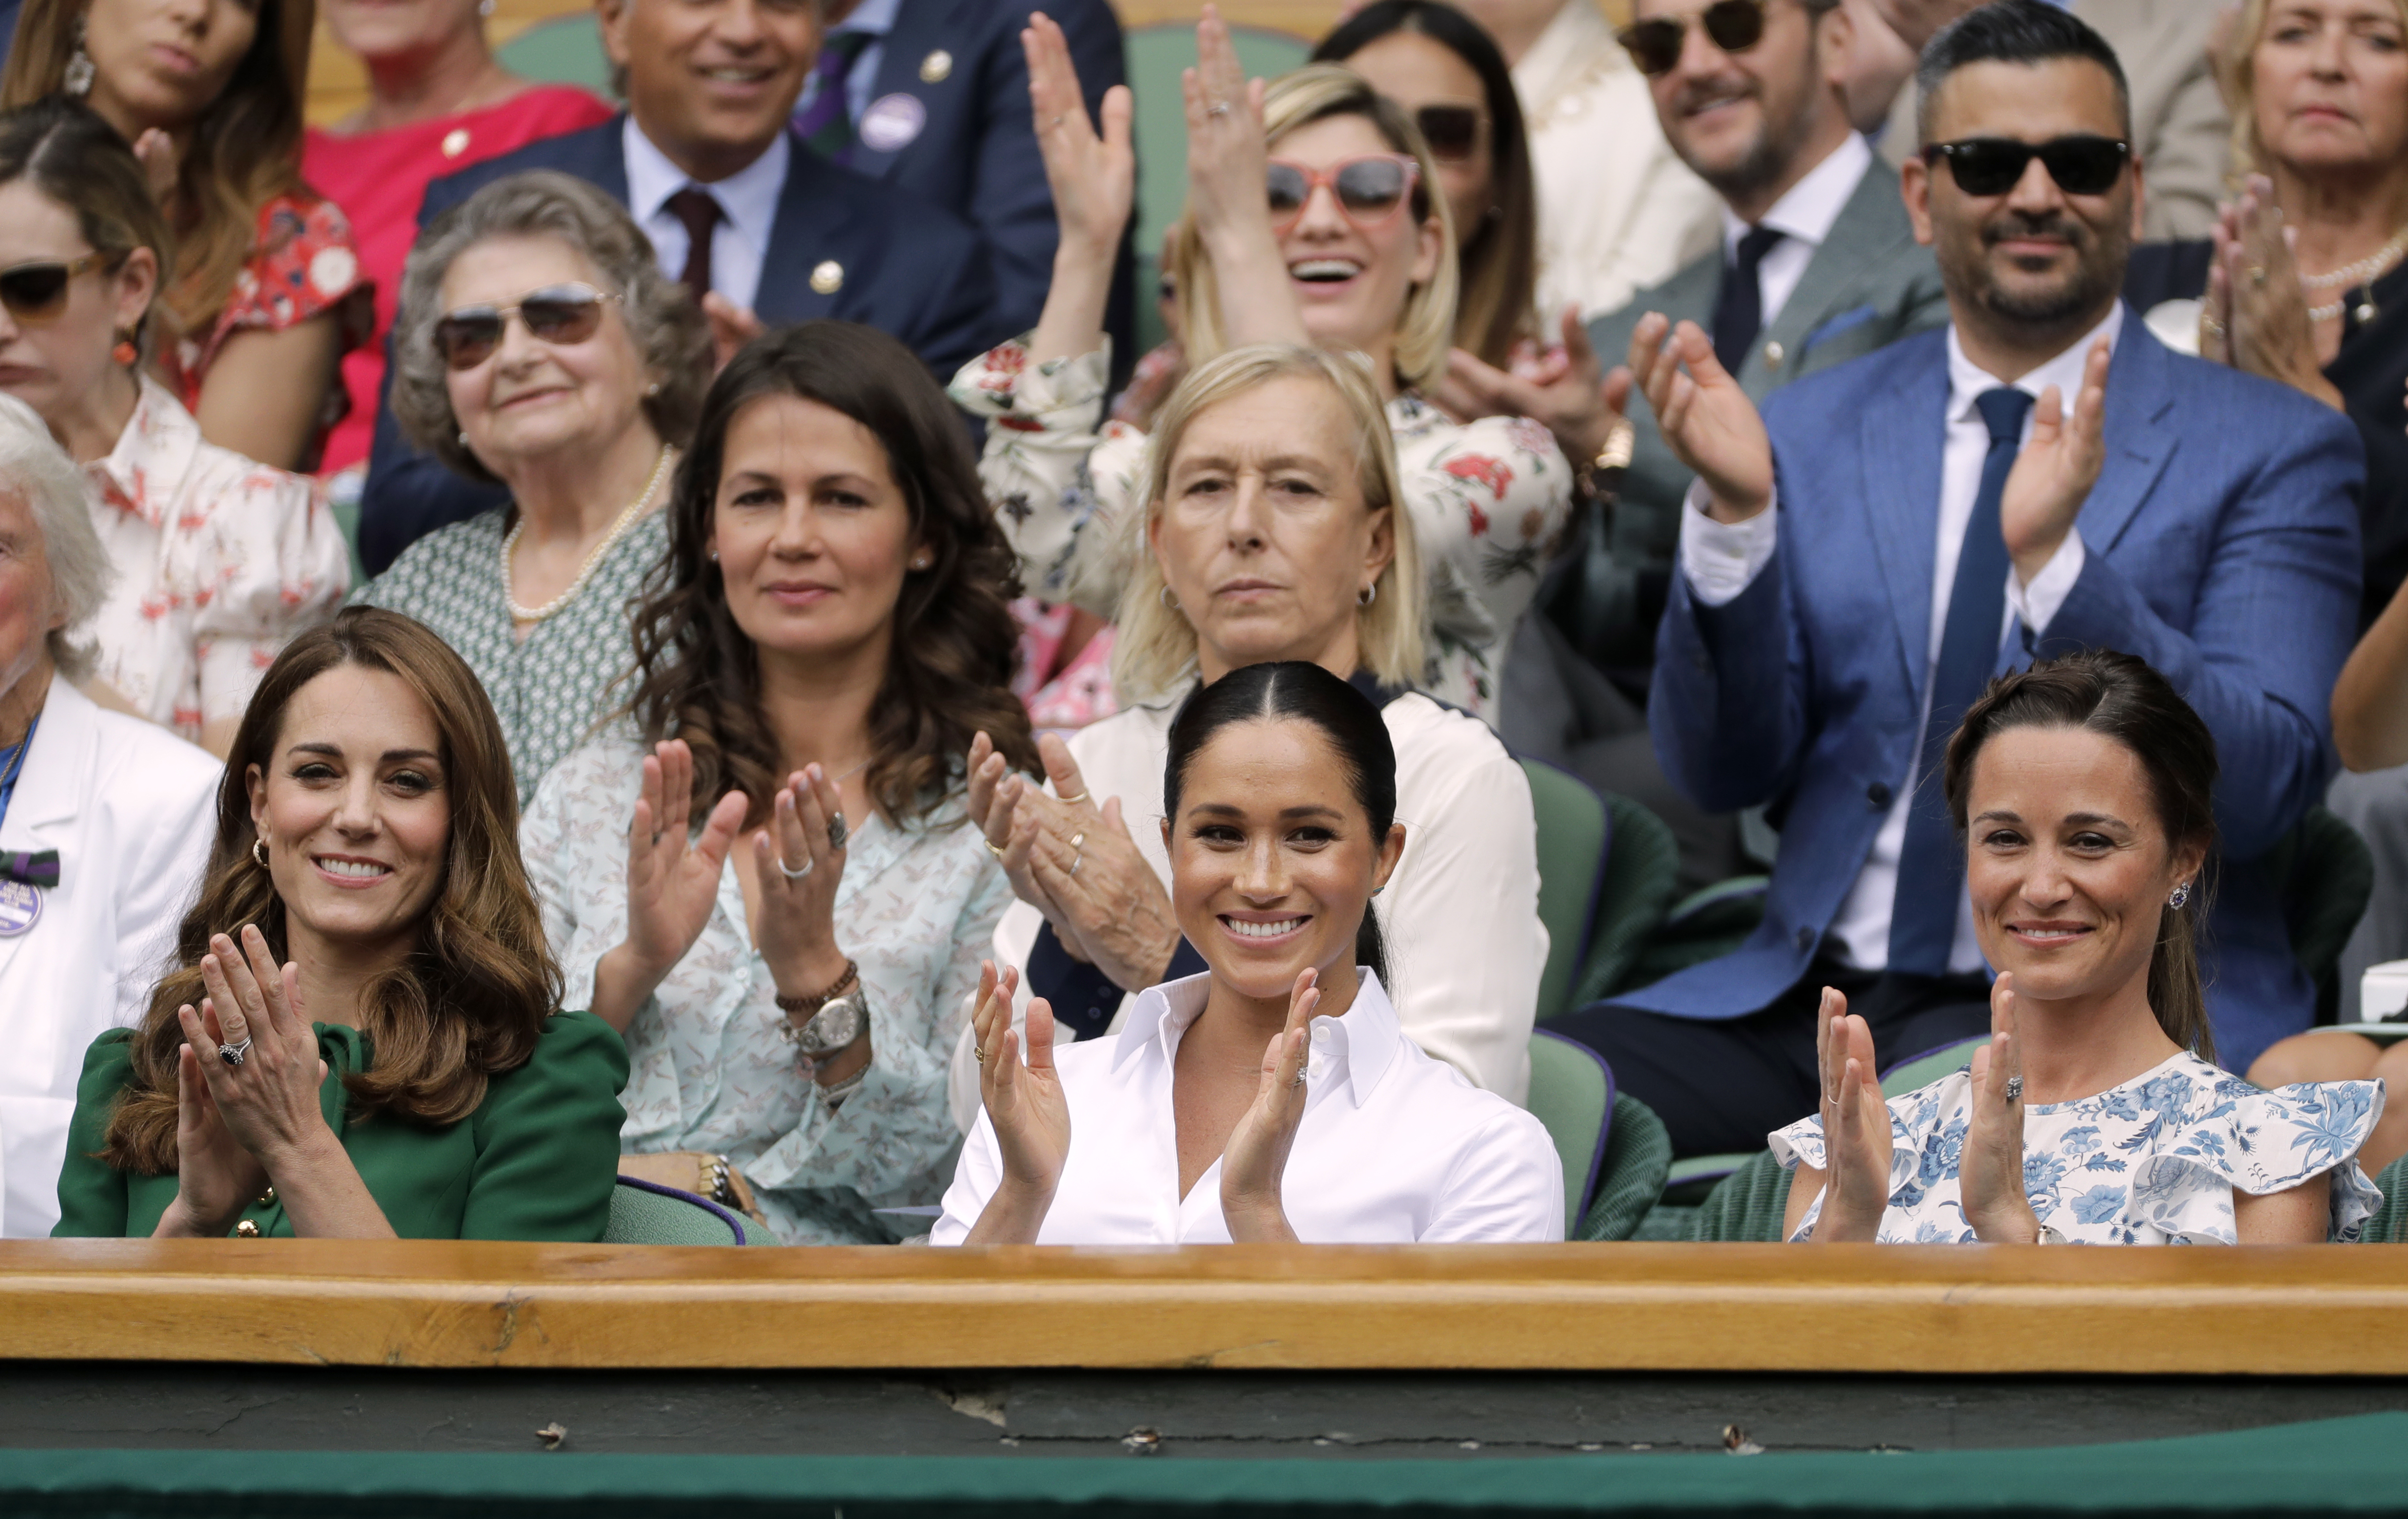 The Duchess of Cambridge and The Duchess of Sussex with Pippa Matthews during the women's singles final on day twelve of the Wimbledon Championships at the All England Lawn Tennis and Croquet Club, Wimbledon.